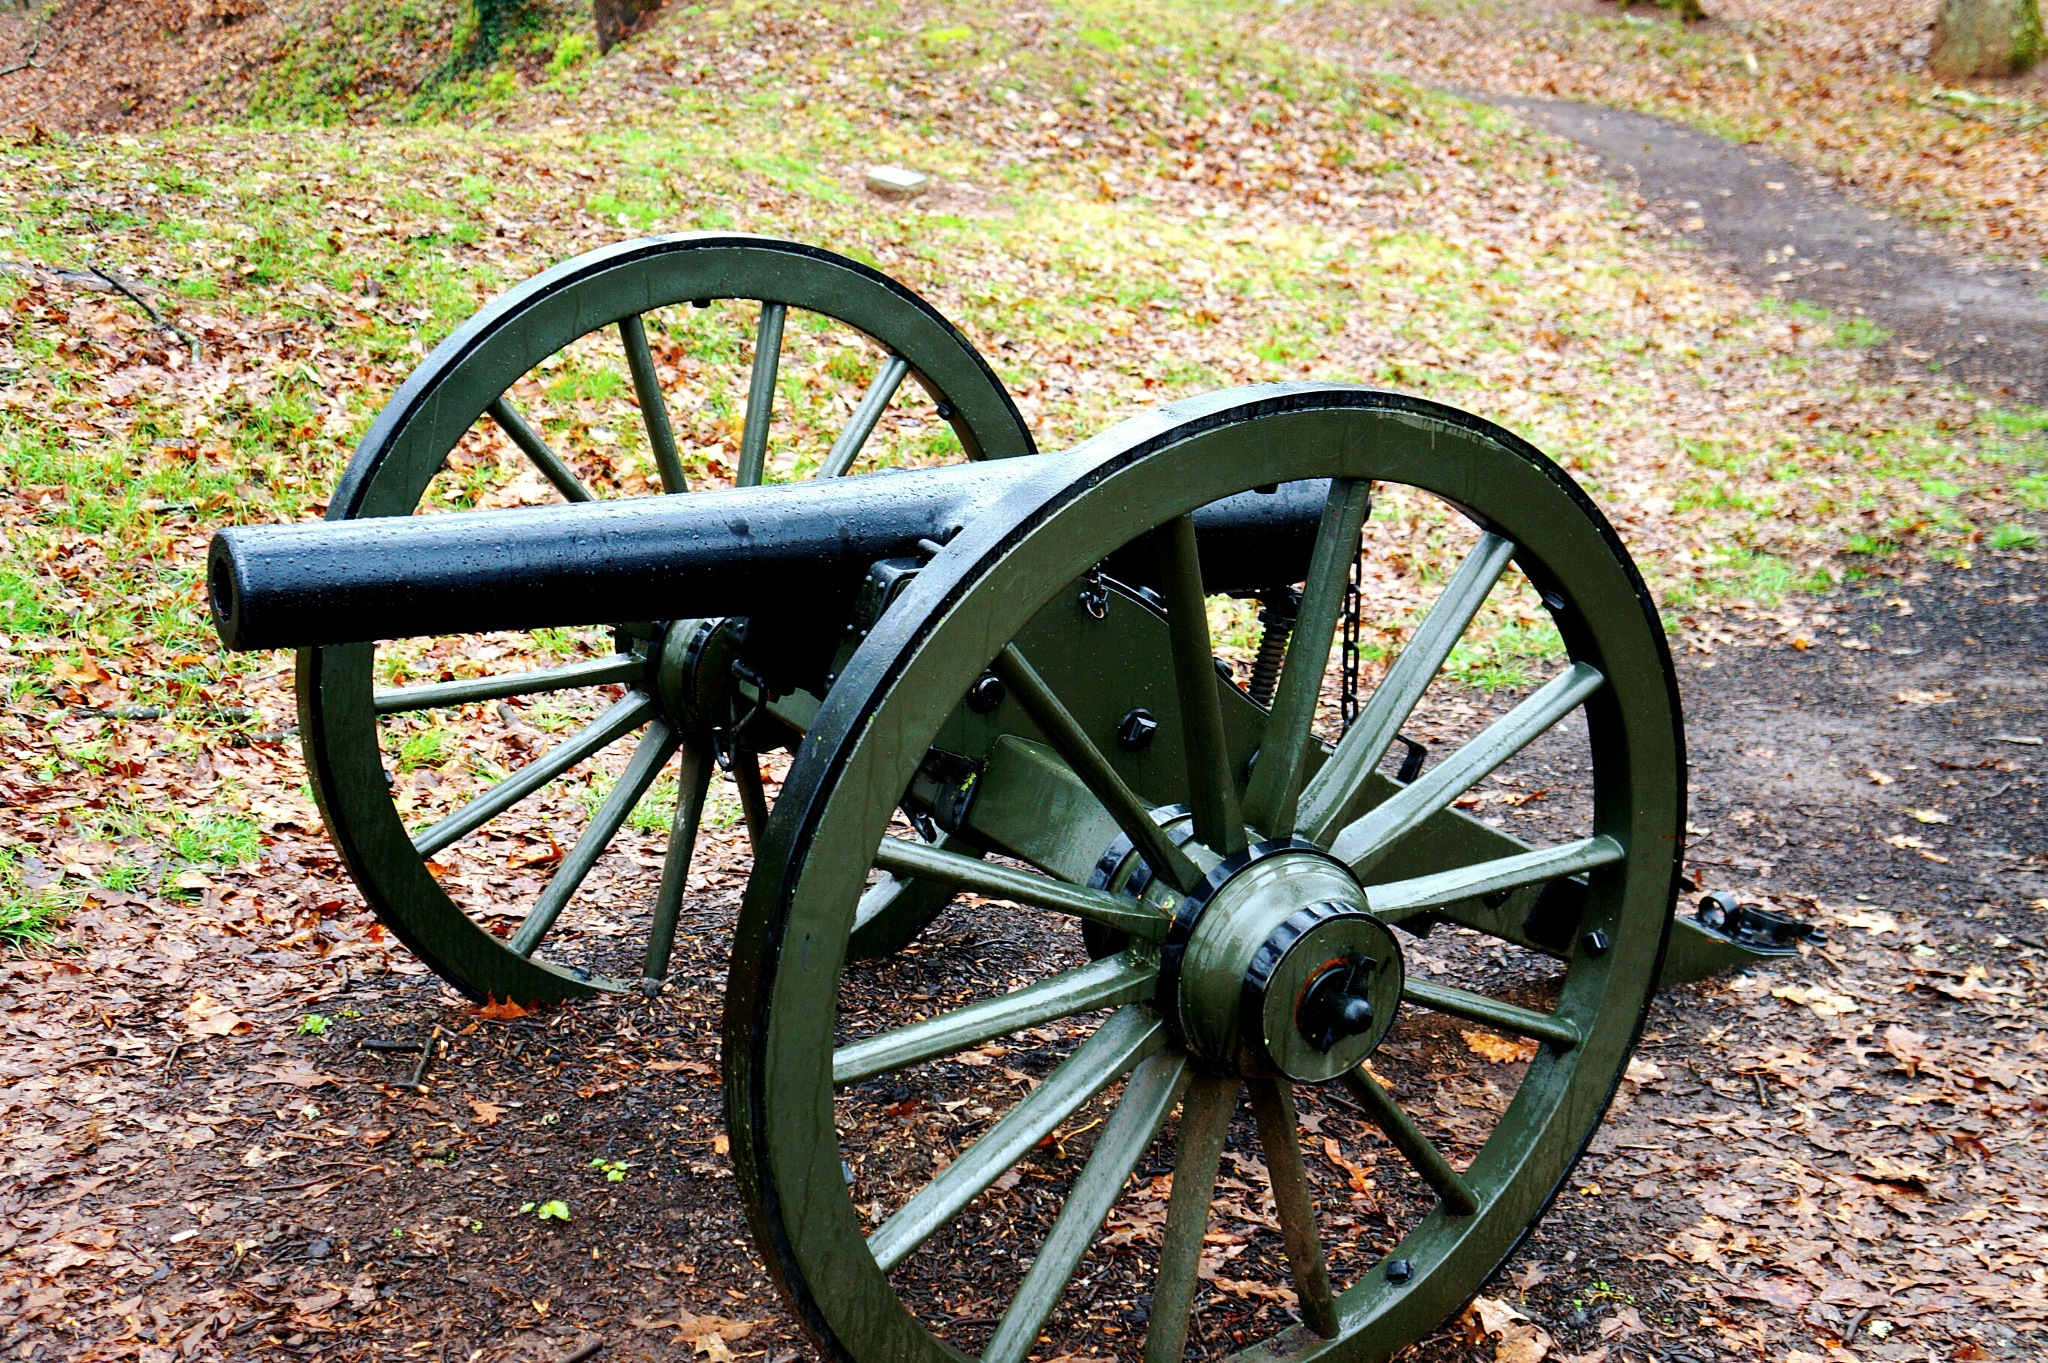 Cannon. by Paul Hopson